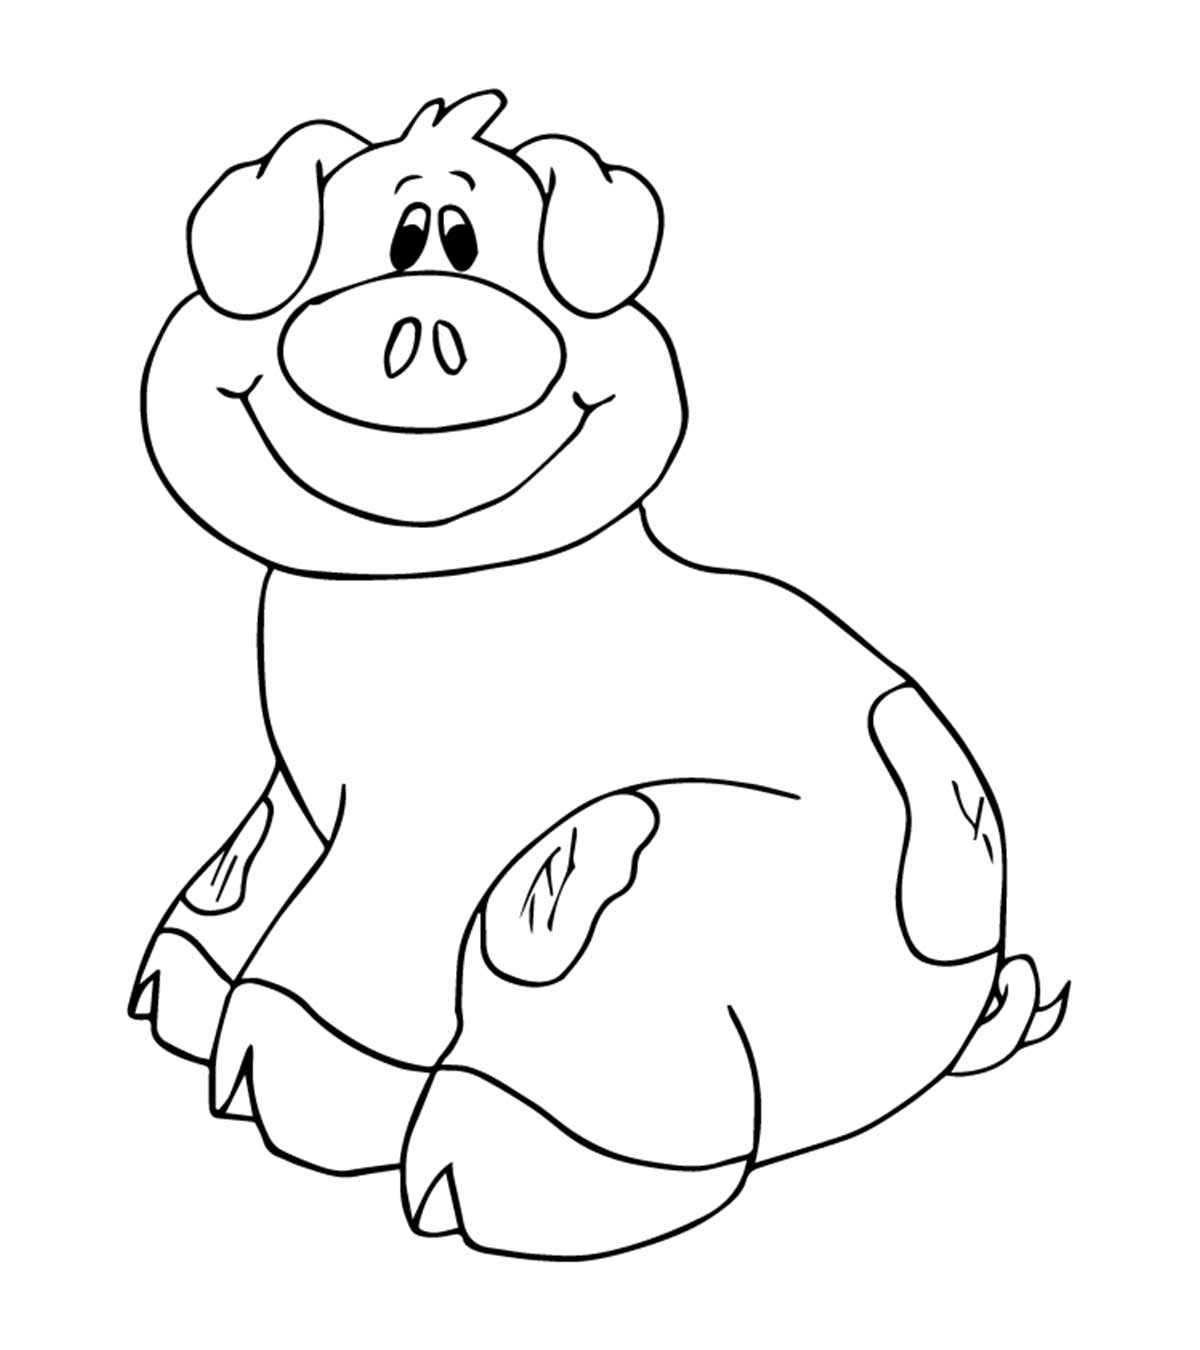 Top 20 Free Printable Pig Coloring Pages Online | 1350x1200